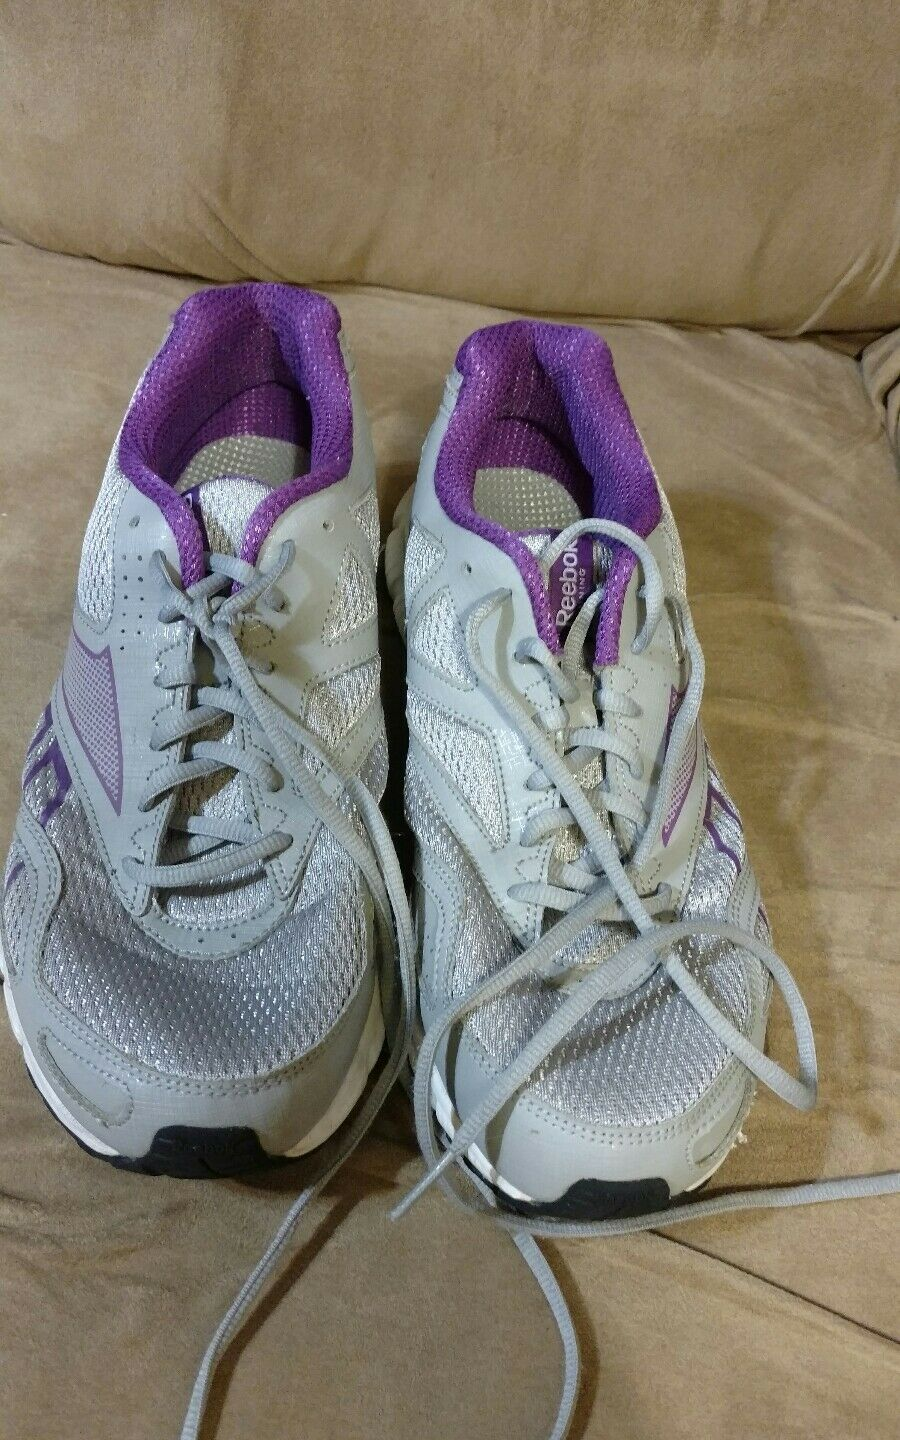 Man's/Woman's womens reebok size 11 running First shoe Year-end special promotions First running grade in its class Suitable for color 4b943a